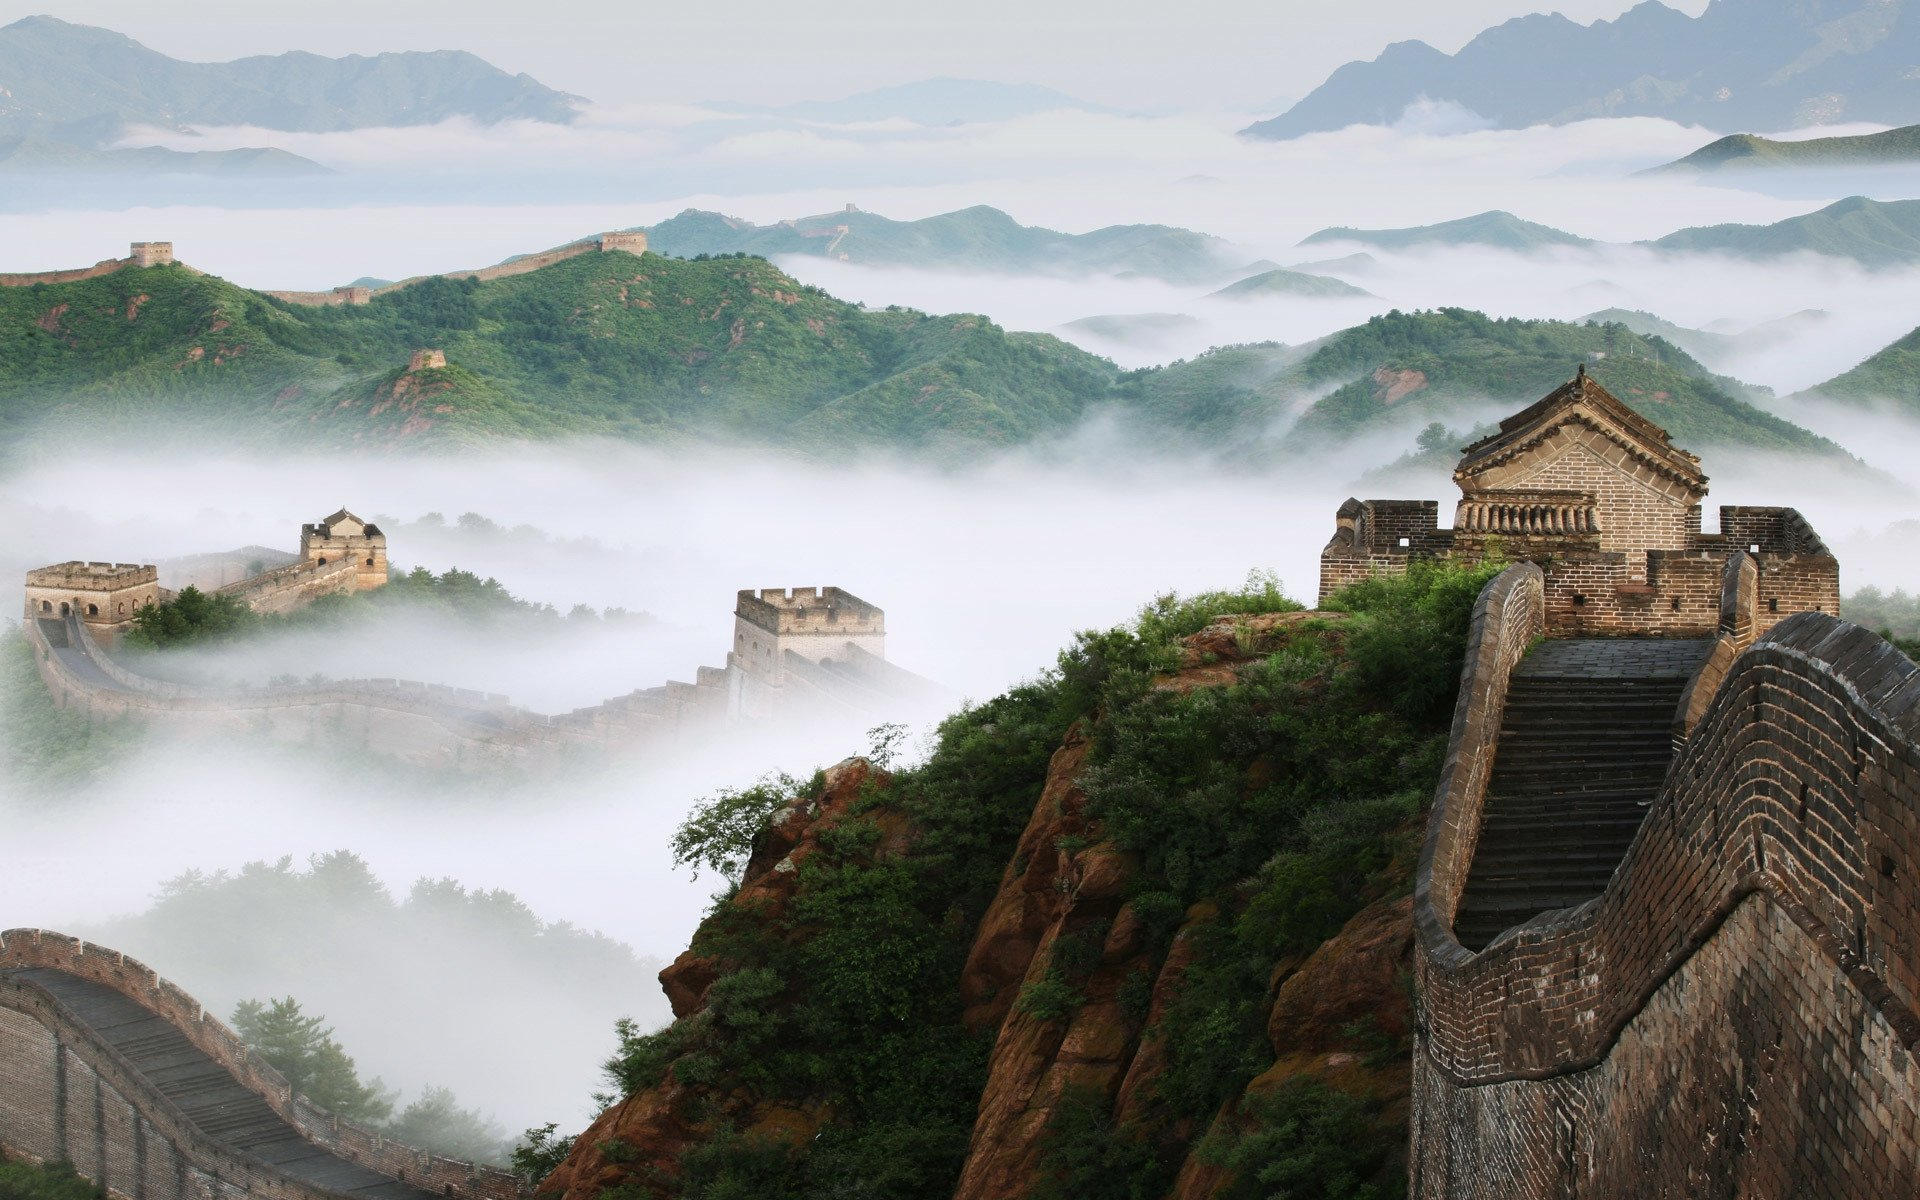 Free Download Best Great Wall Of China Wallpaper Id492508 For High